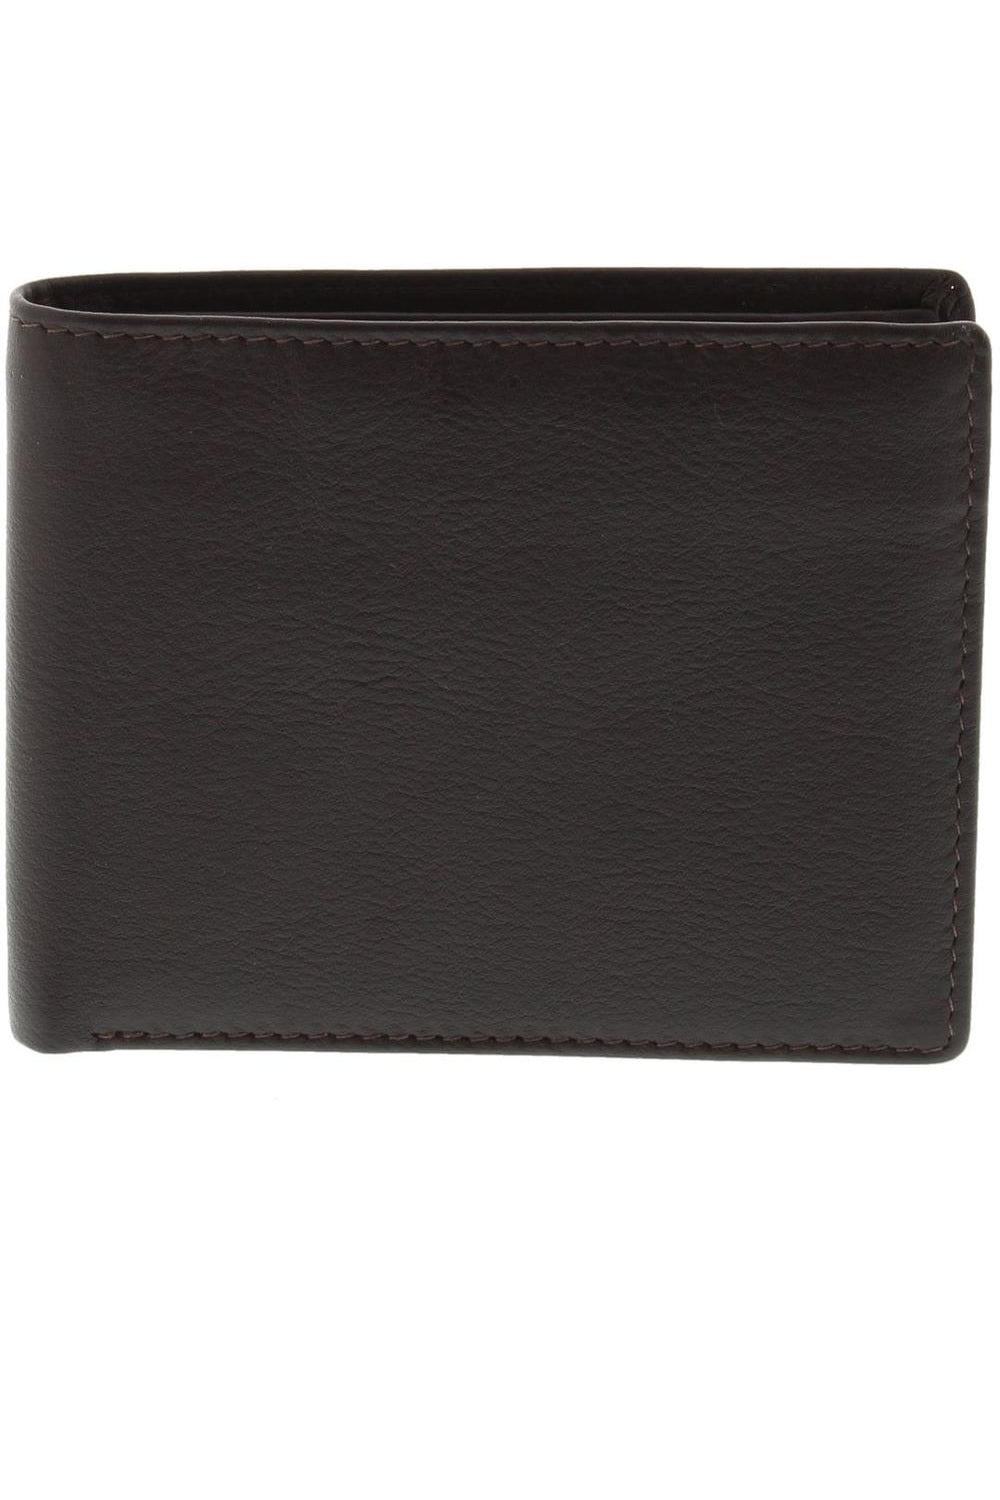 Cobb & Co Dom RFID Bifold Leather Wallet